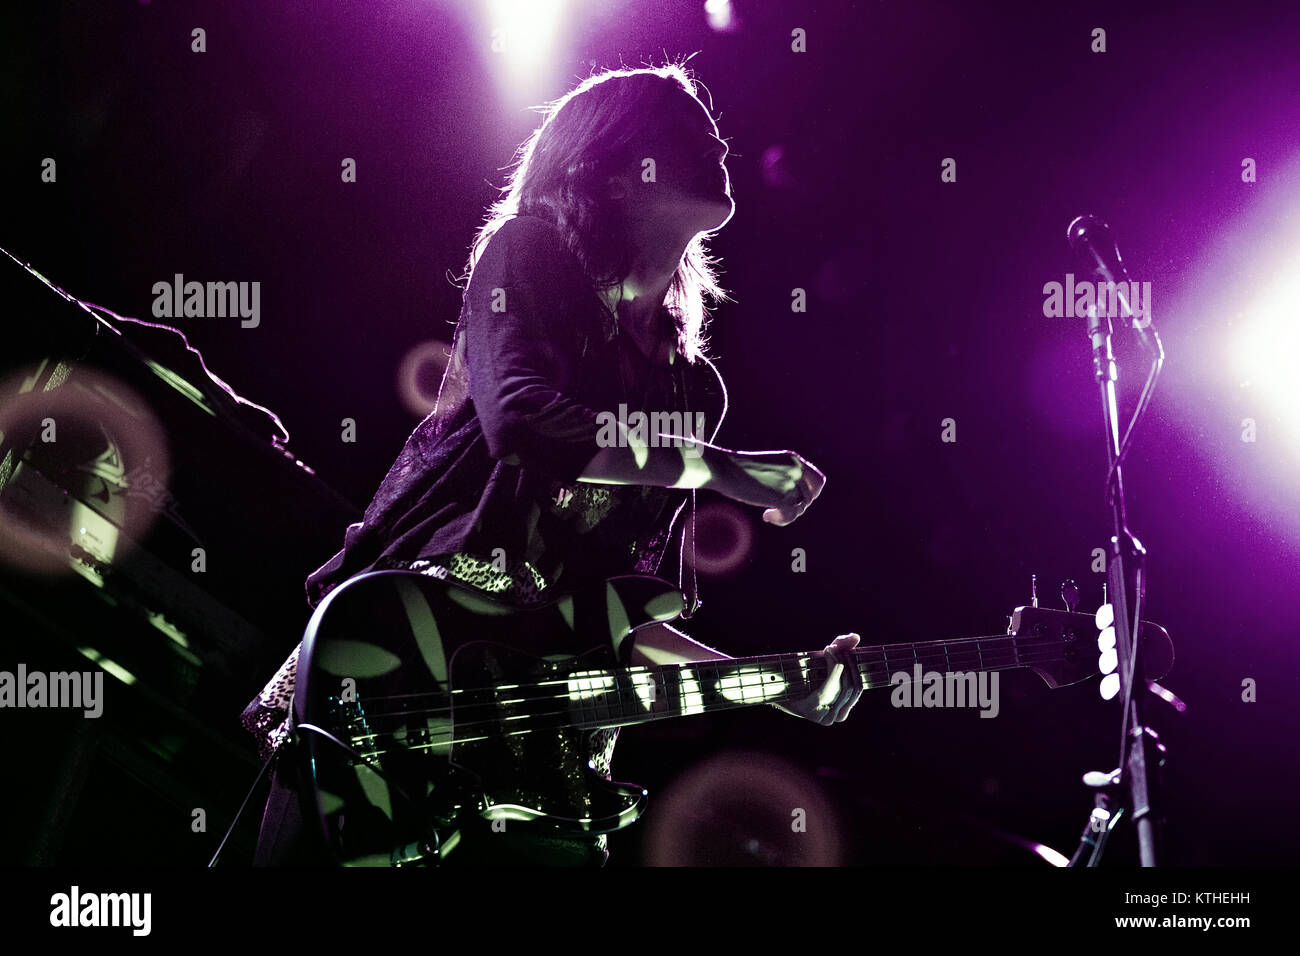 The American alternative rock band The Smashing Pumpkins performs a live concert at Oslo Spektrum. Here musician - Stock Image